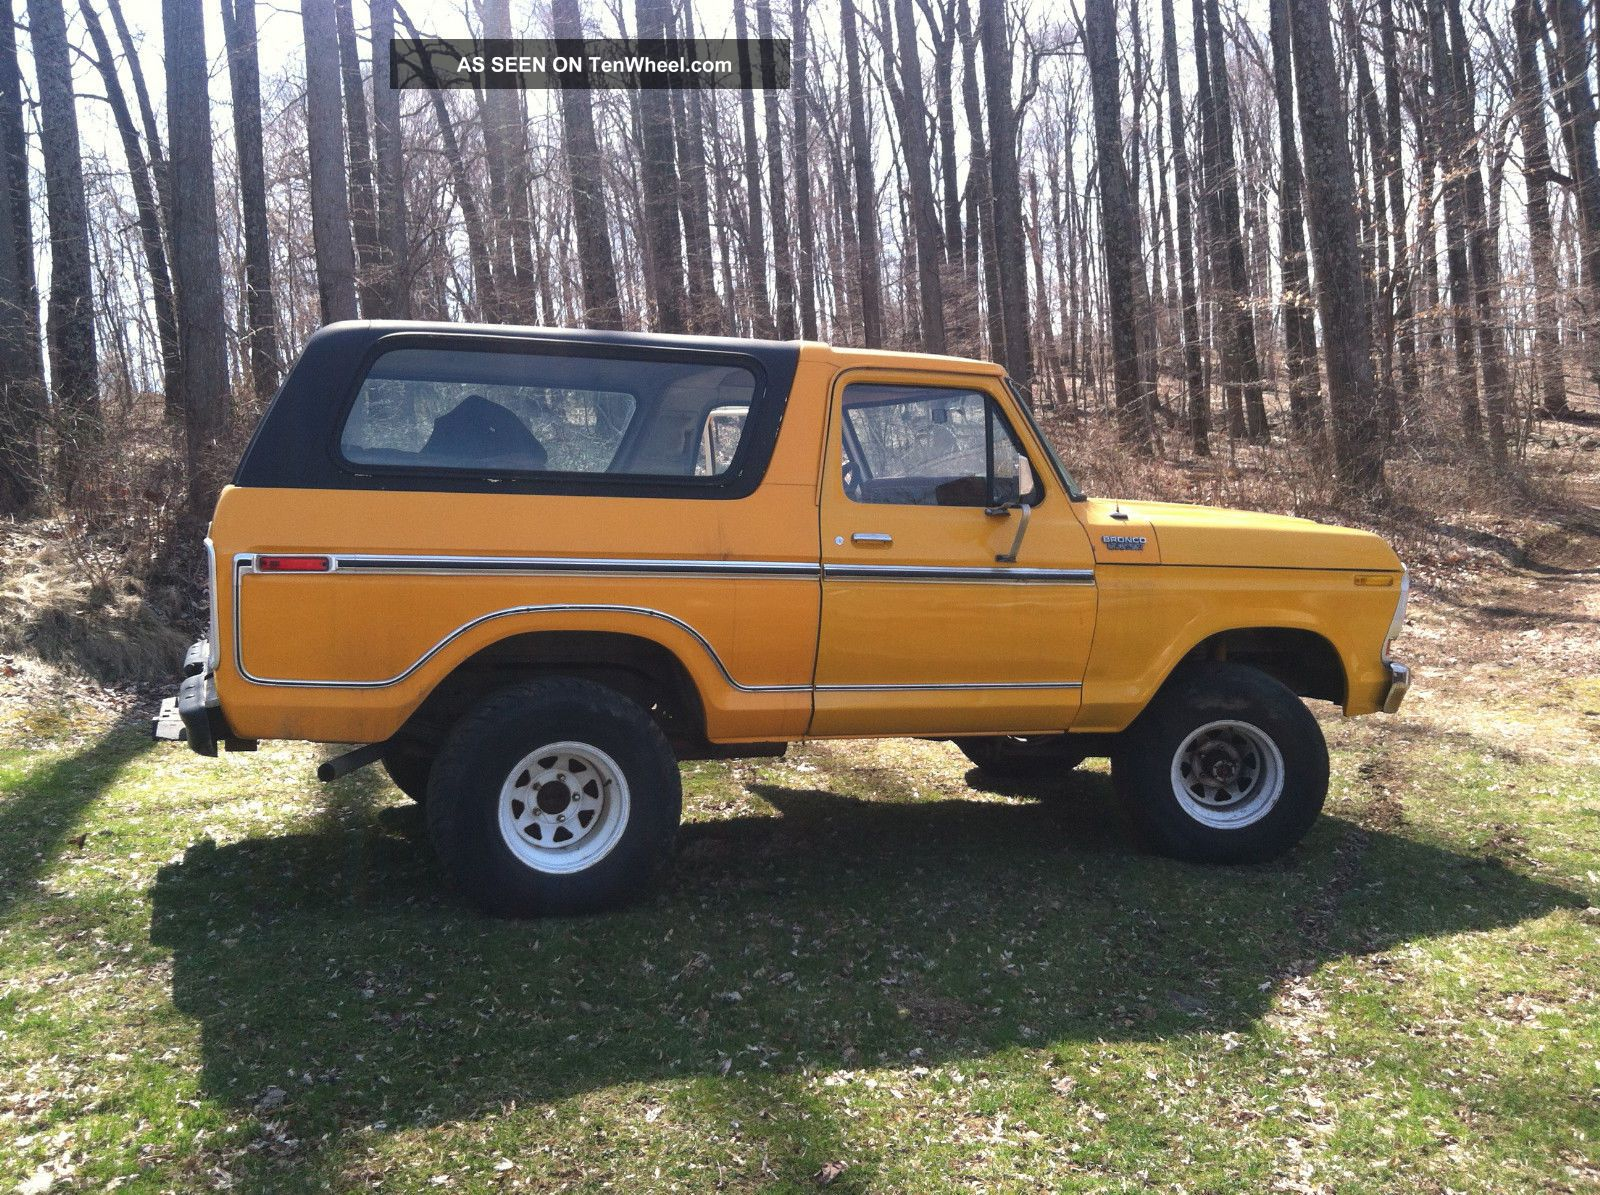 chevy 4x4 manual with 32113 1978 Ford Bronco on P 0996b43f80380183 moreover 5 likewise Transfer Case Service additionally 63810 1956 Original Chevy 1 Ton Panel Van Truck Runs Great 2nd Owner 4 Speed 6 Cyl in addition 1985 Chevrolet Military Cucv M1010 Truck Ambulance Tactical 1 14 Ton 4x4 K30.